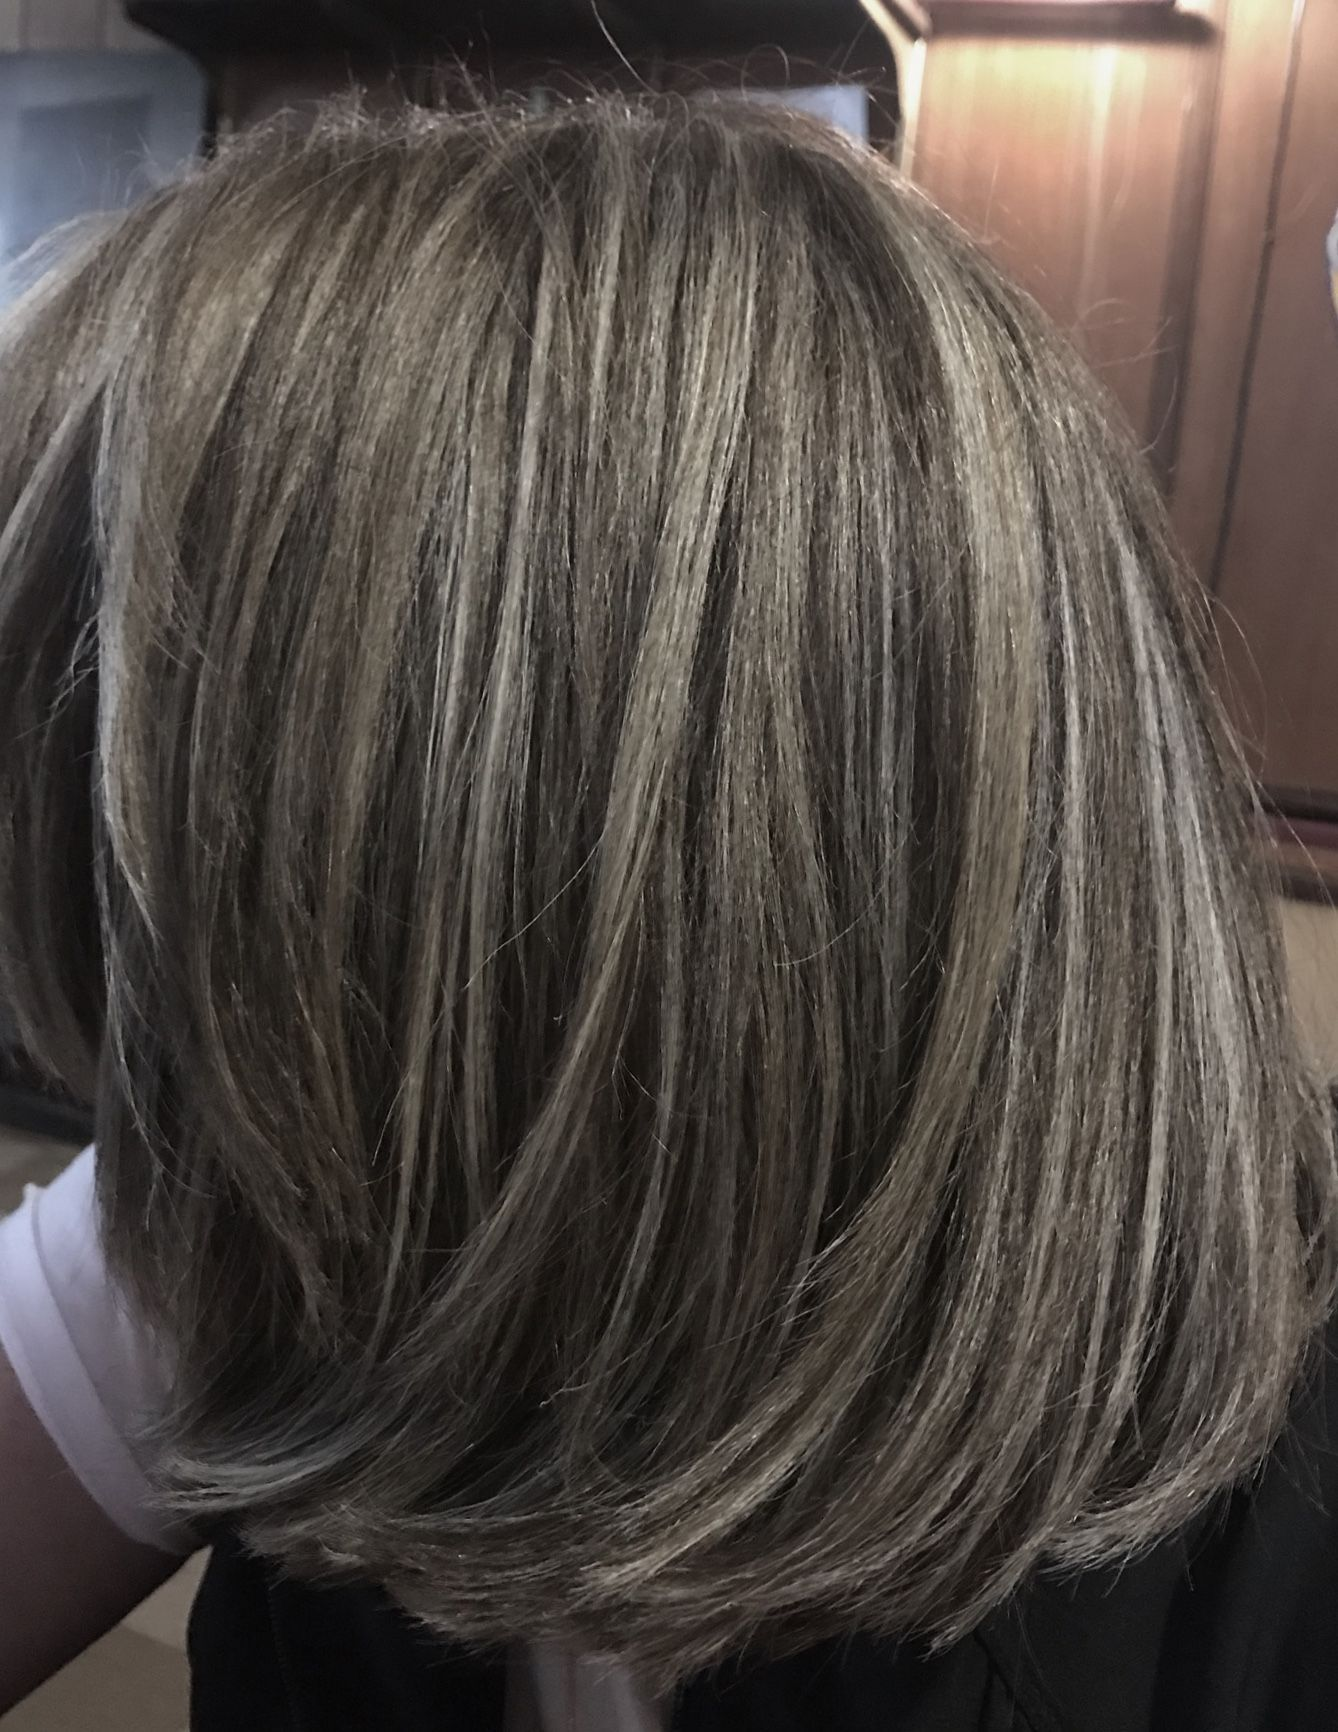 Gray Wigs Lace Frontal Wigs Curly Gray Hair WigsBest Way To Cover Gray Roots